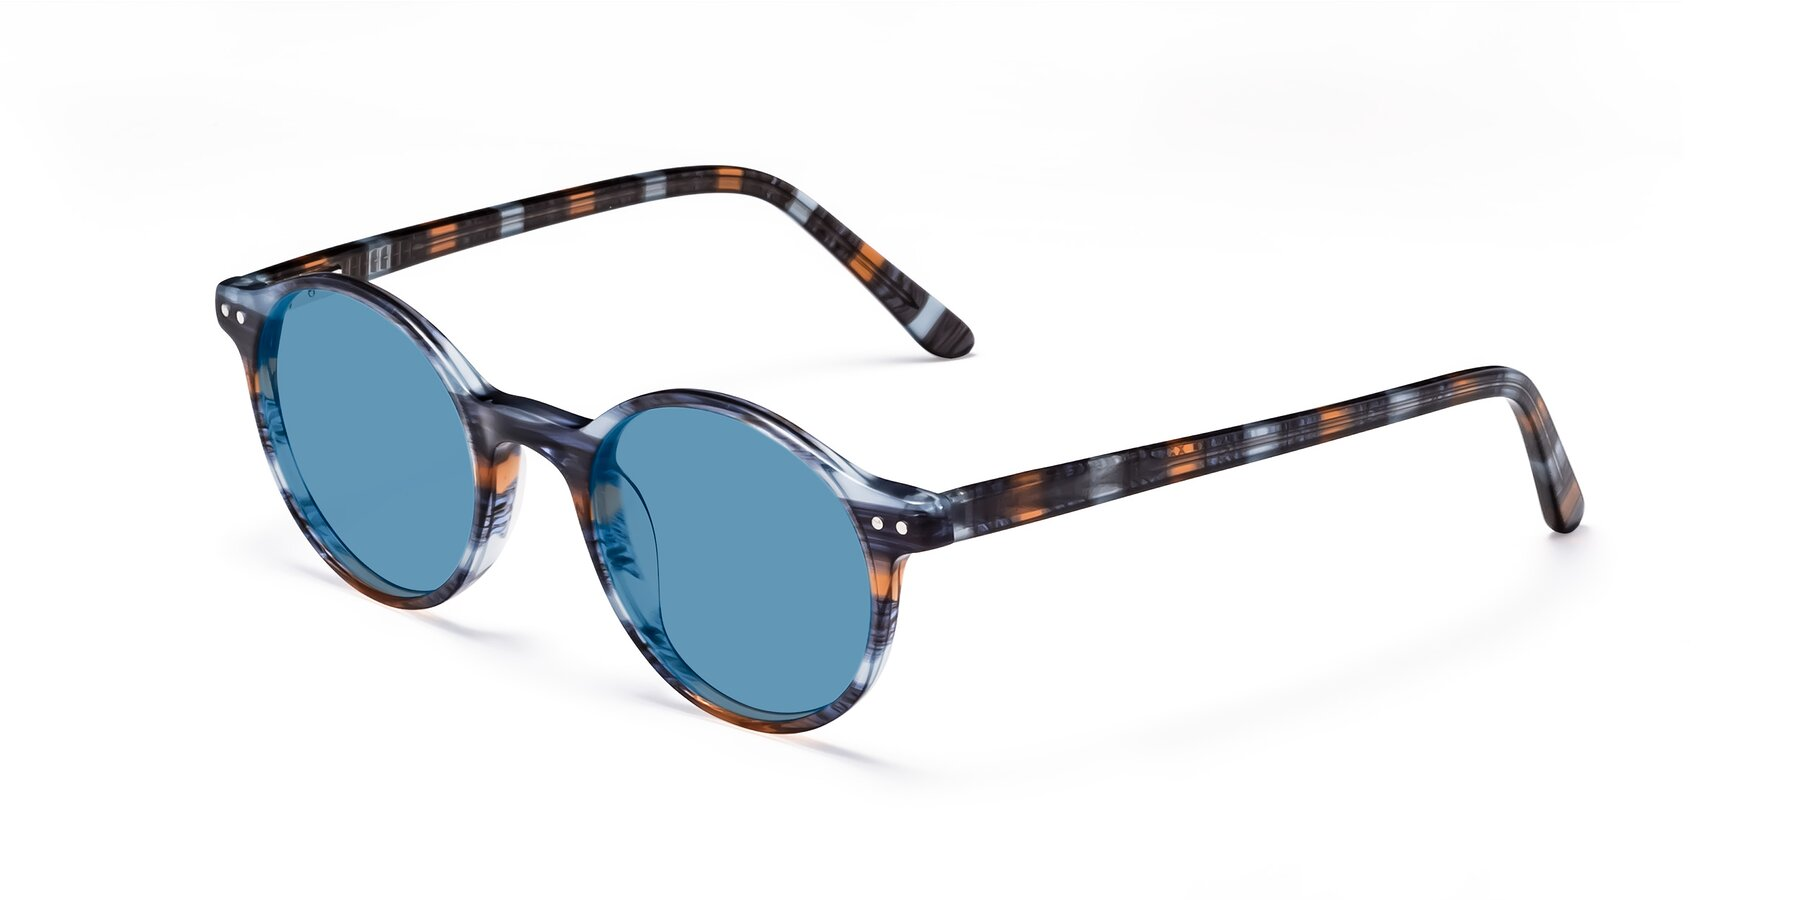 Angle of 17519 in Stripe Blue Brown with Medium Blue Tinted Lenses